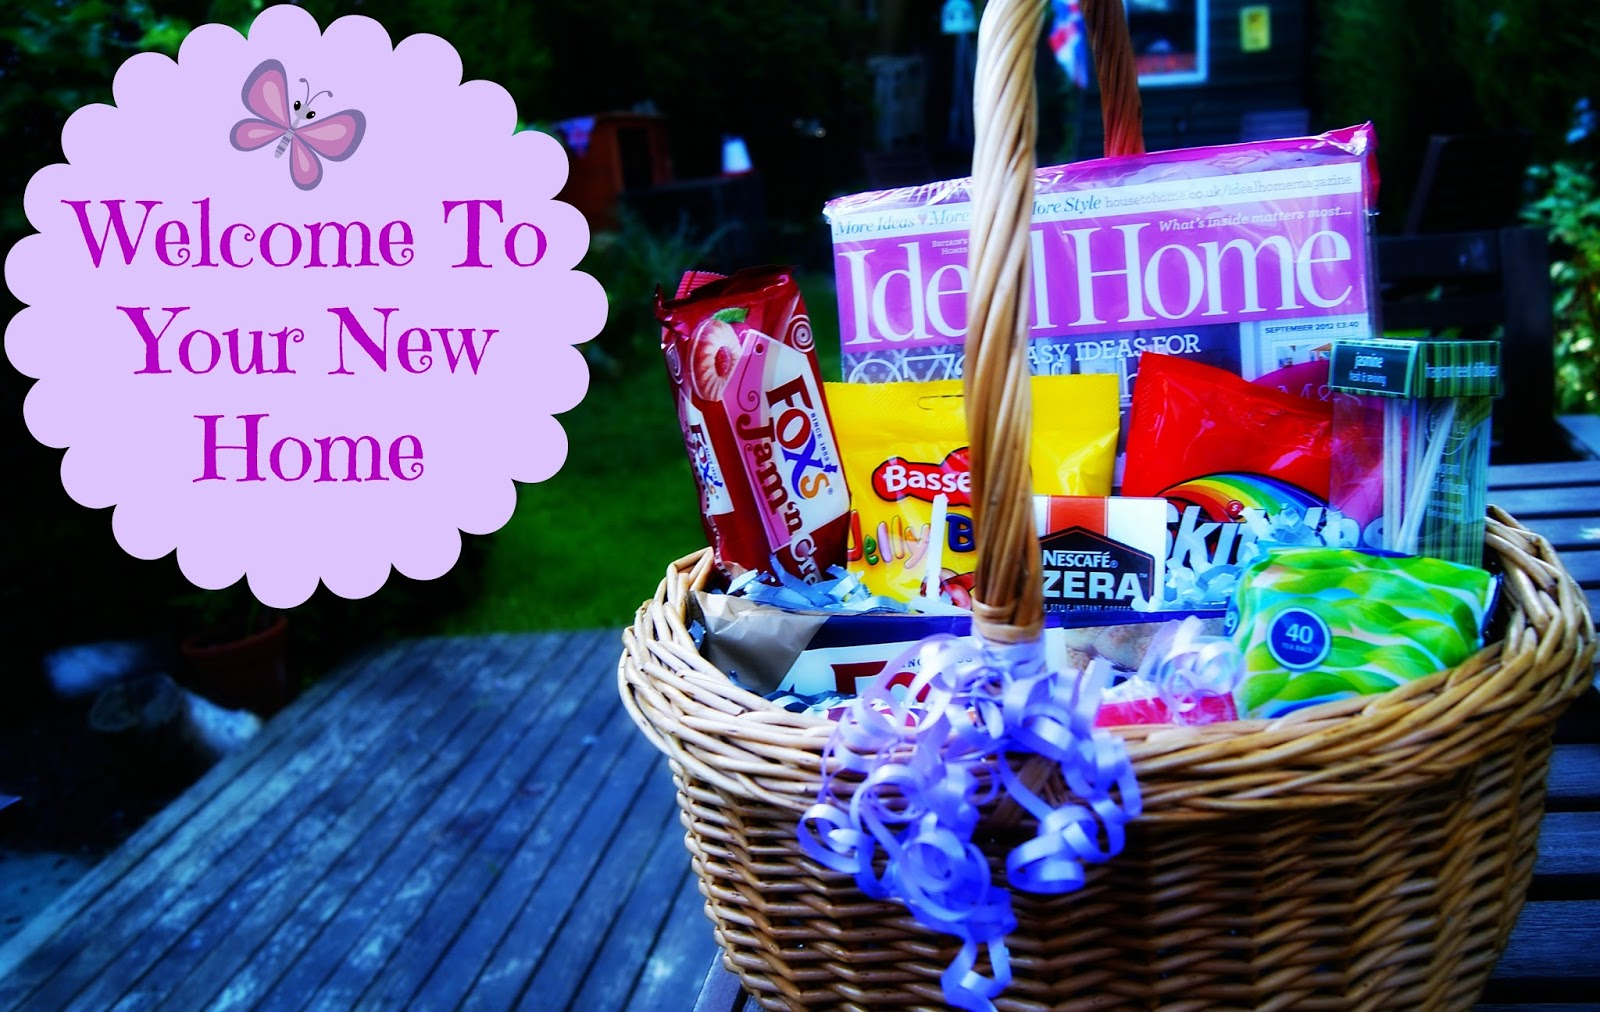 The syders thrifty gift basket idea welcome to your new for Ideas for new house